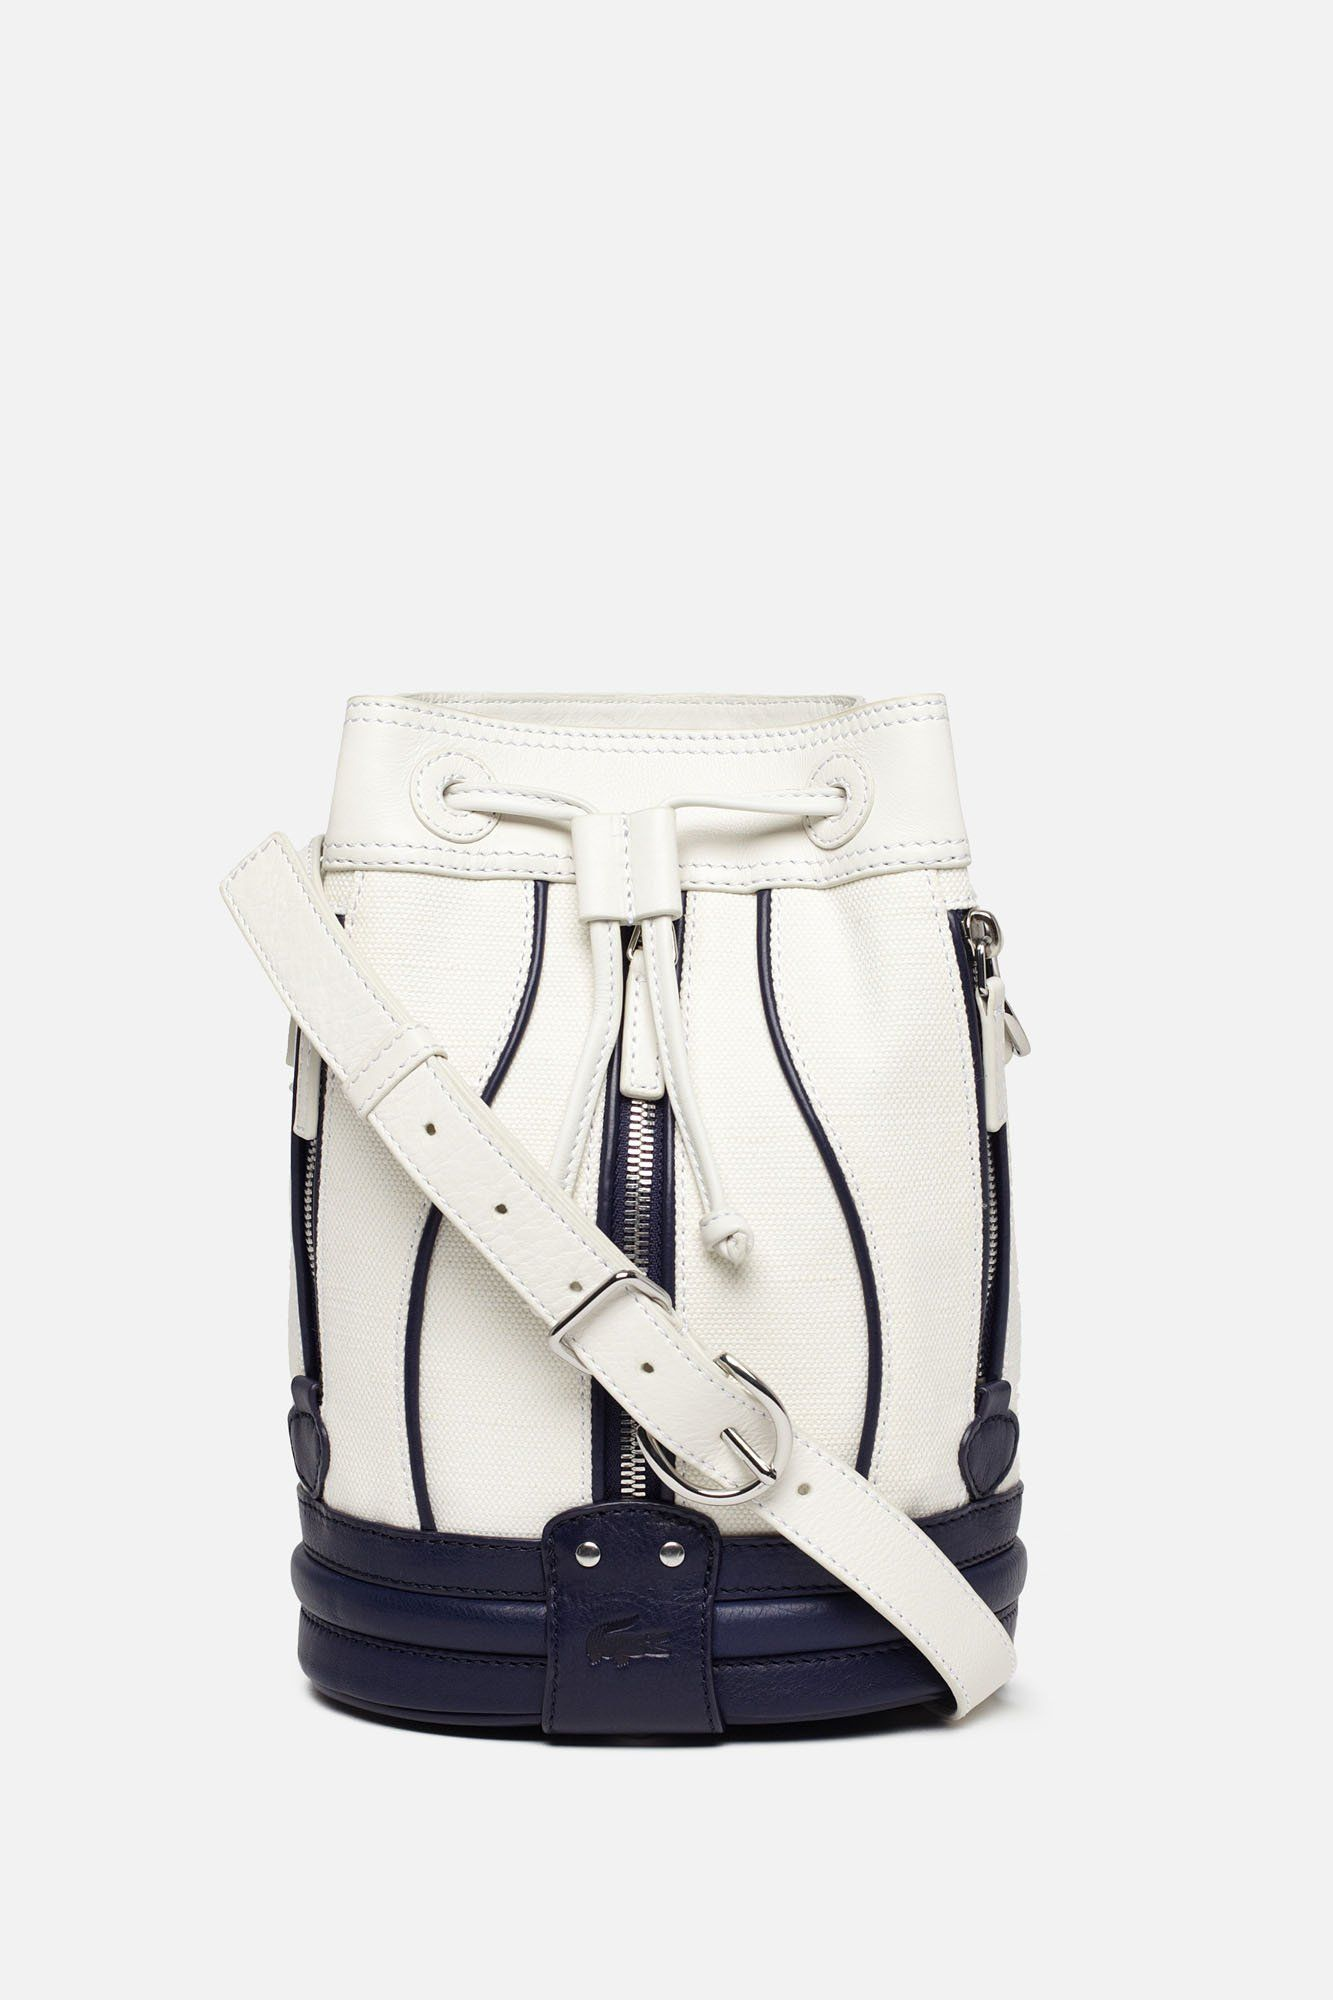 Lacoste Cathy Toile Small Bucket Bag : Bags & Wallets